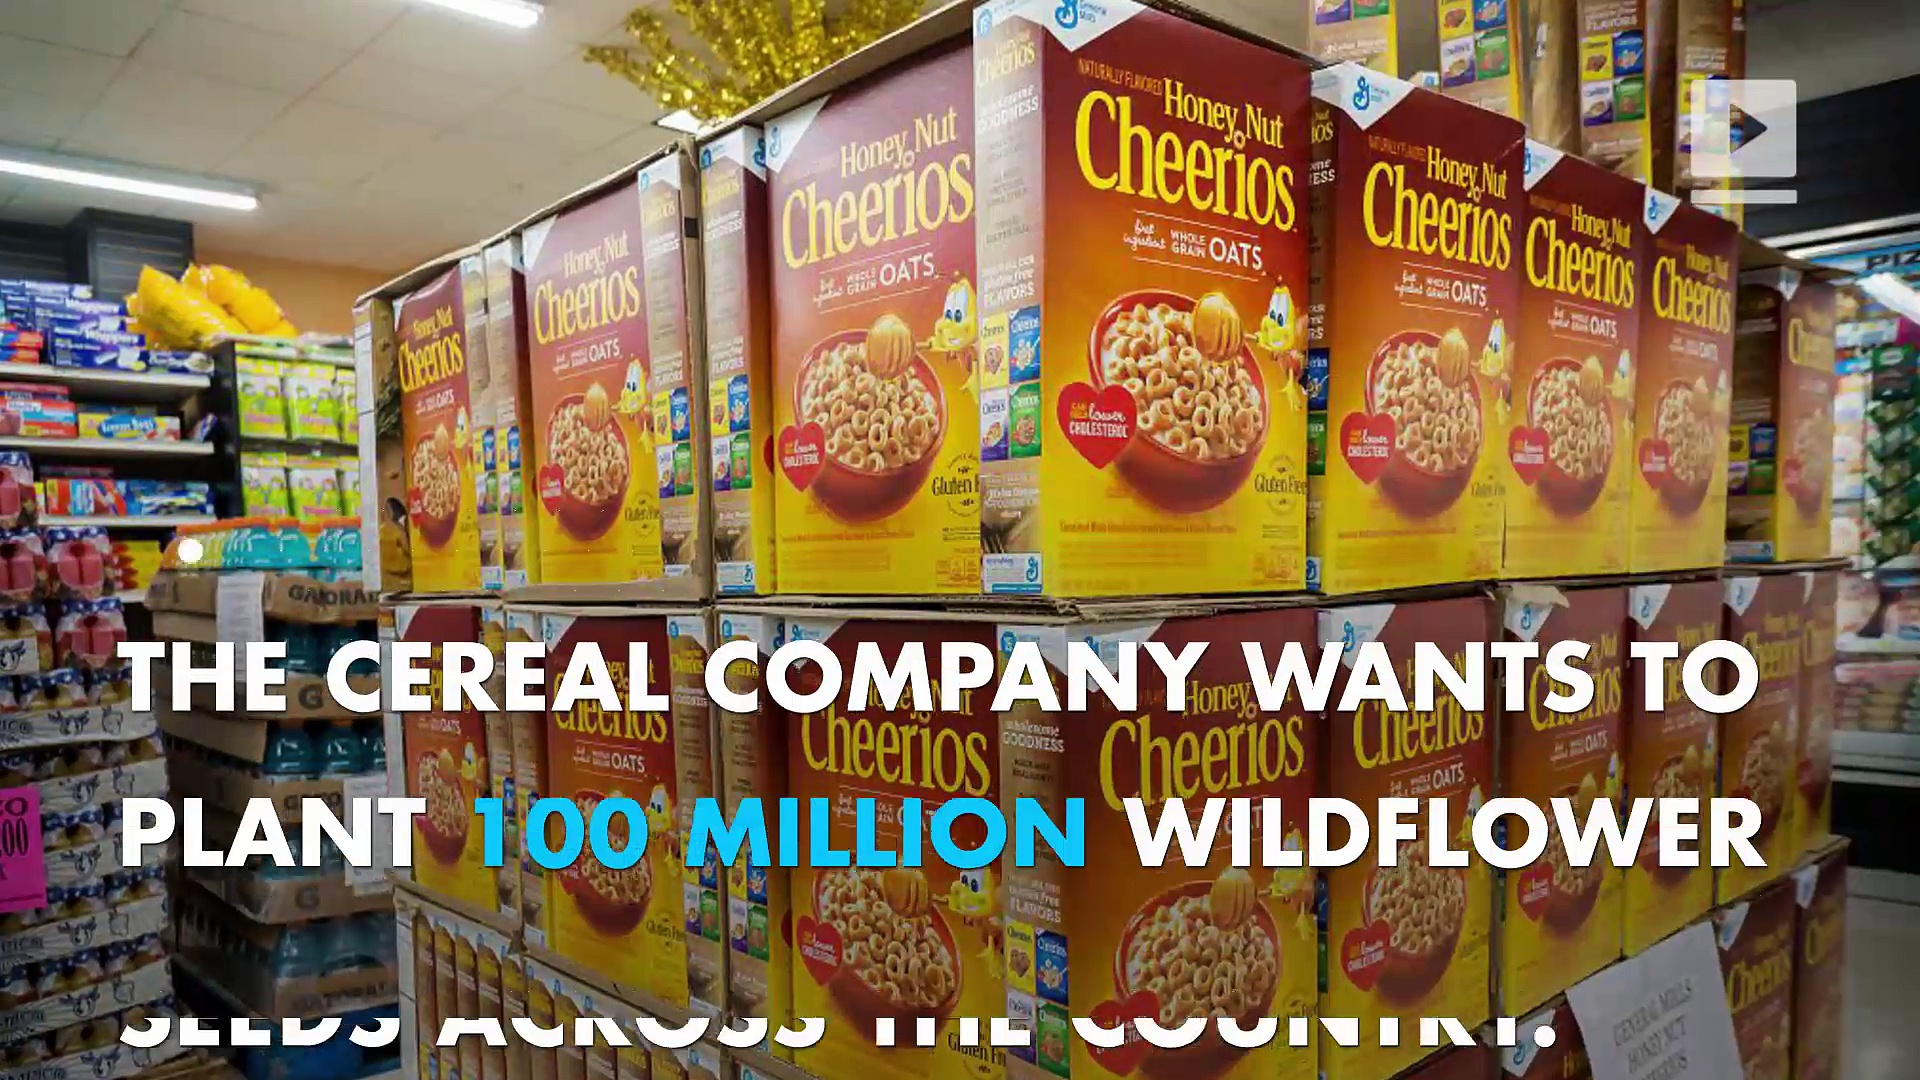 Cheerios wants you to help to save the bees!